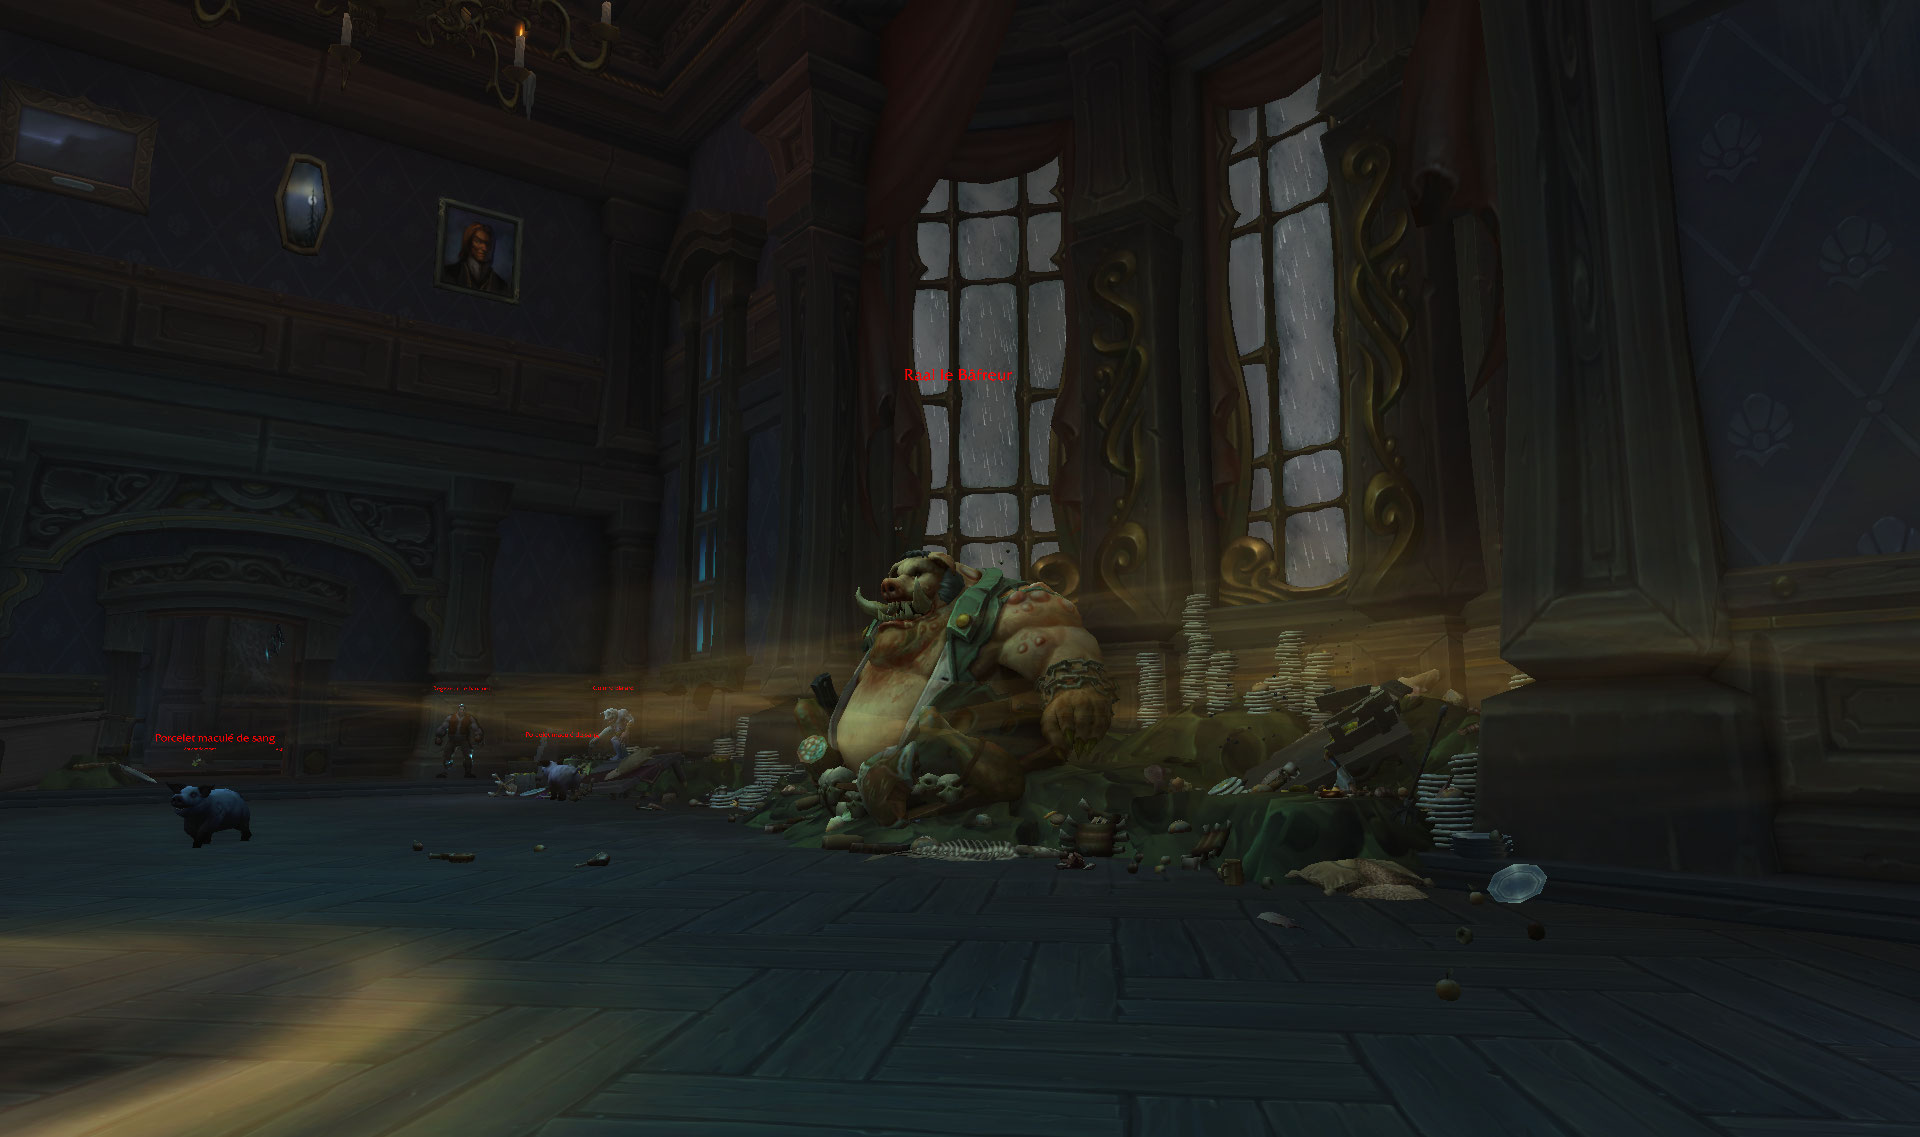 Screenshot du donjon Manoir Malvoie dans World of Warcraft.